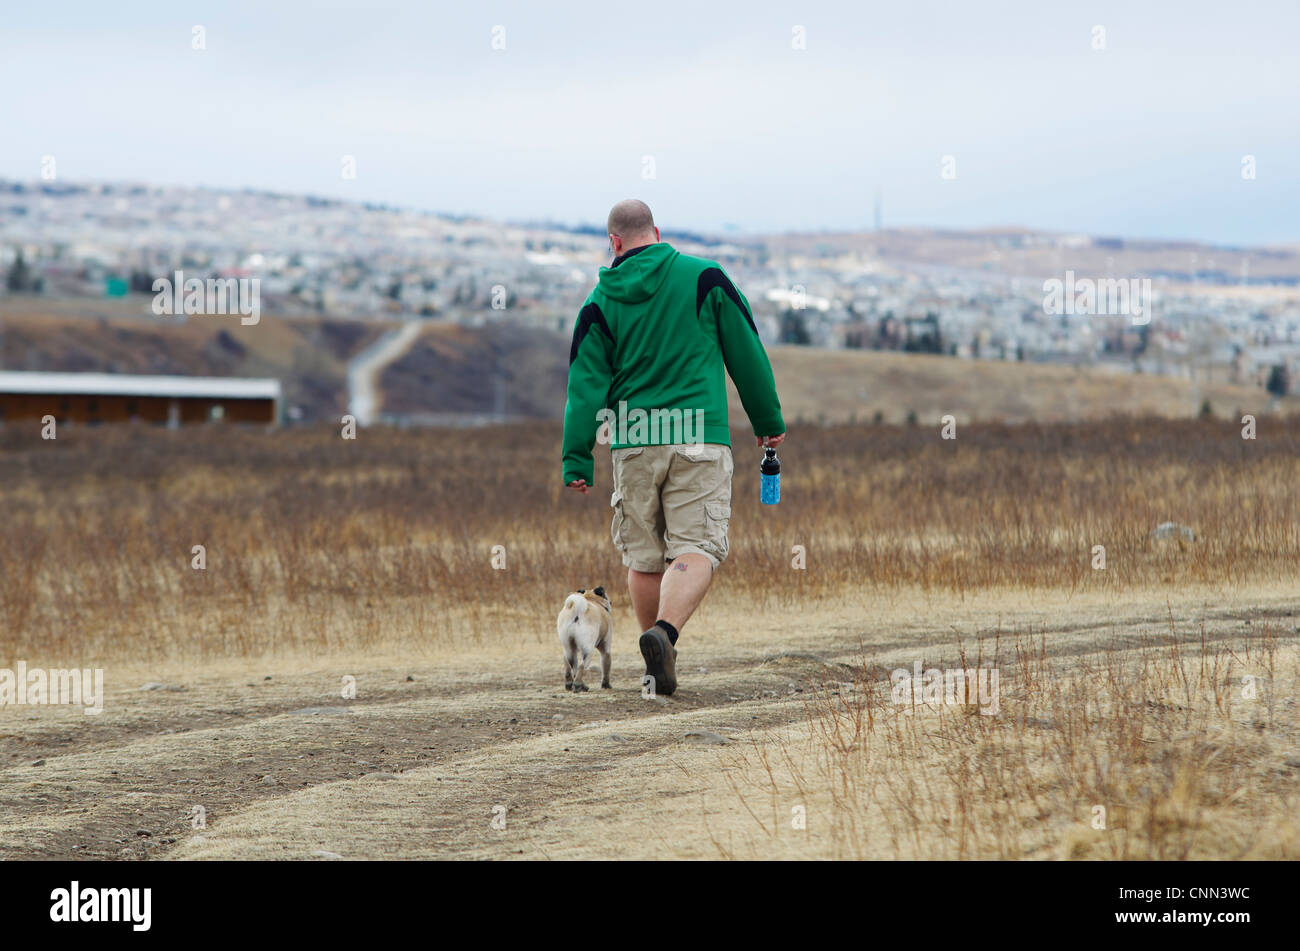 A 1 year old fawn coloured pug walking with its owner in an urban dog park. - Stock Image